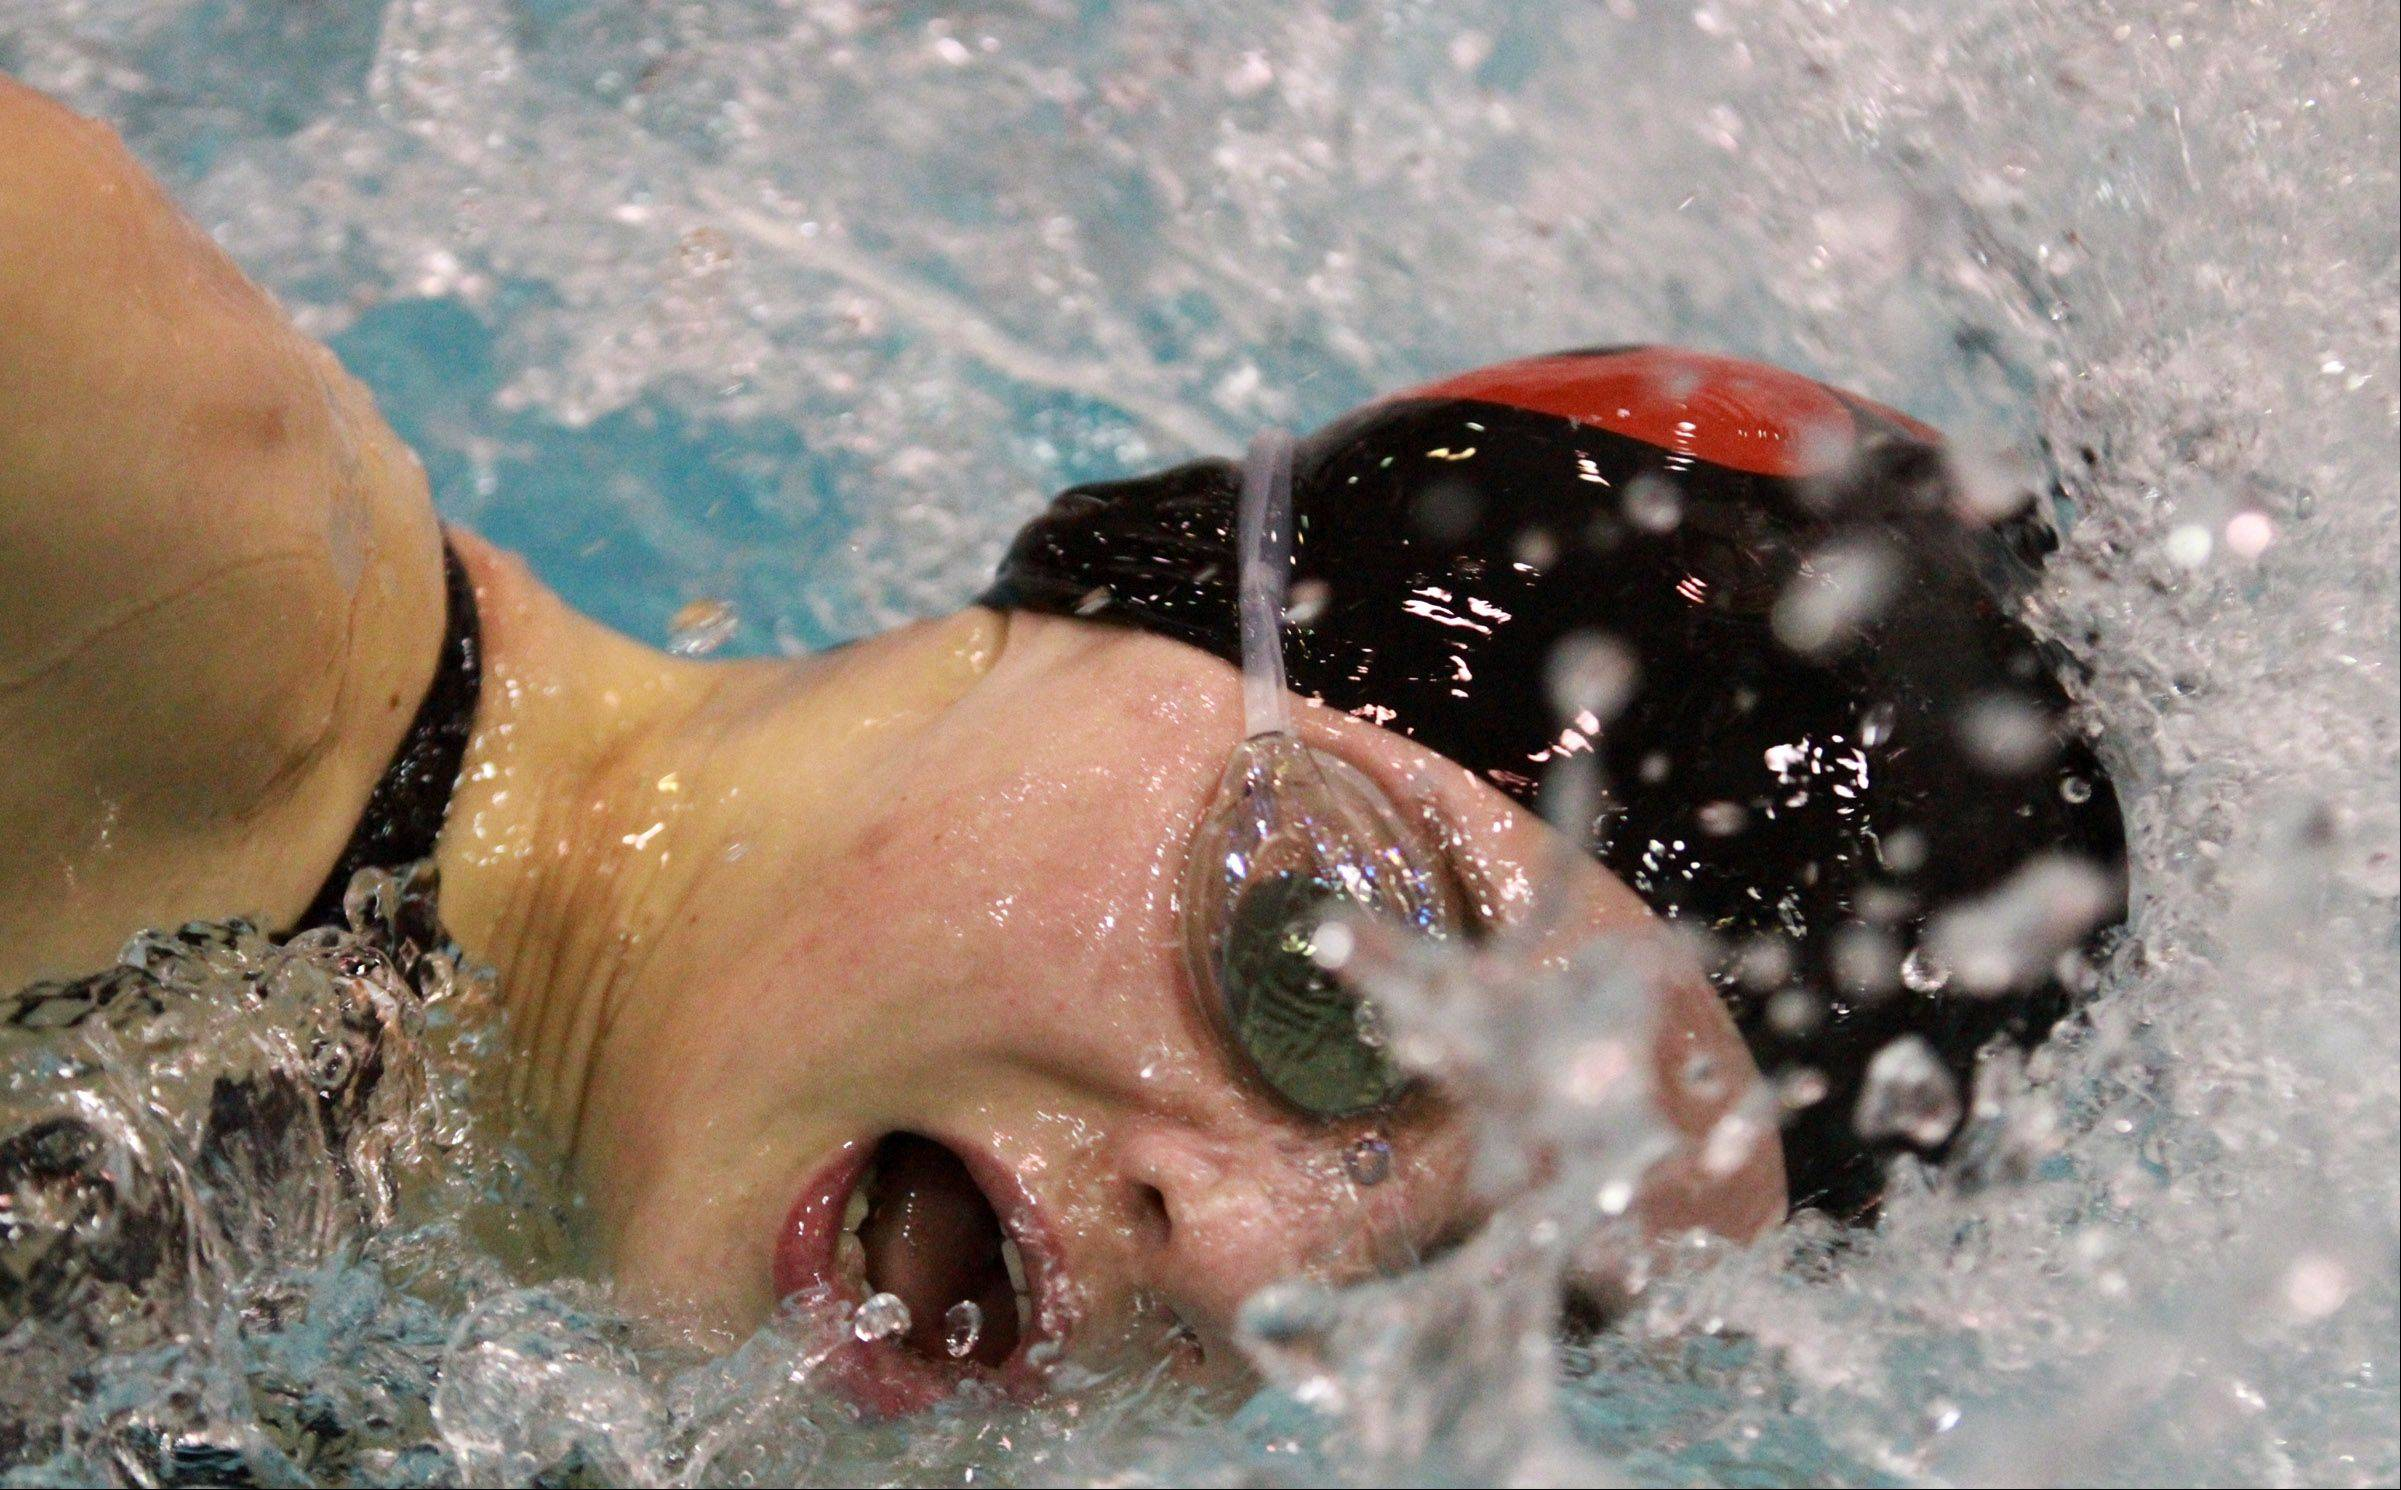 Barrington's Emma Barnett placed fifteenth in the 500-yard freestyle at the state preliminaries in Evanston on Friday.